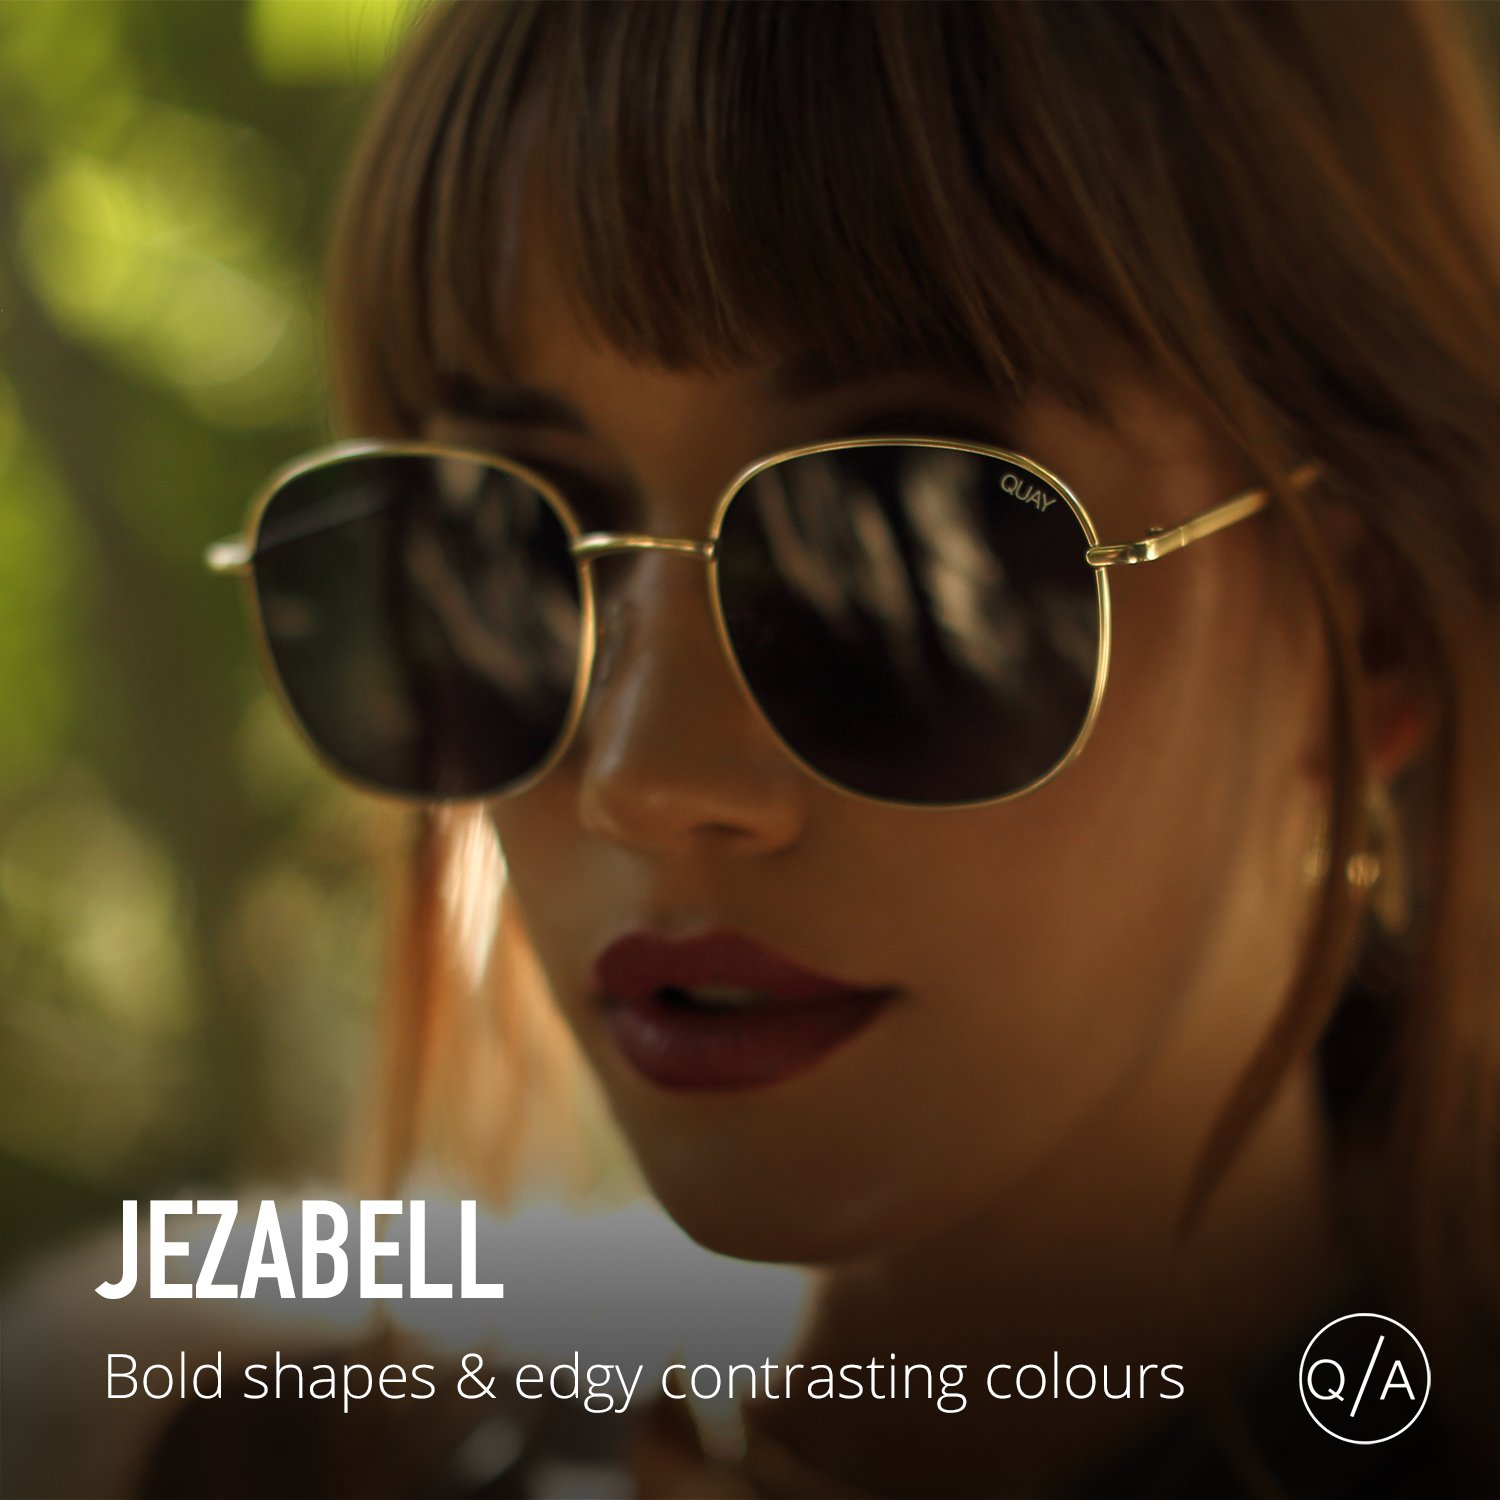 5ff9b4b790 Amazon.com  Quay Australia JEZABELL Women s Sunglasses Minimal Round  Sunnies - Gold Smoke  Clothing